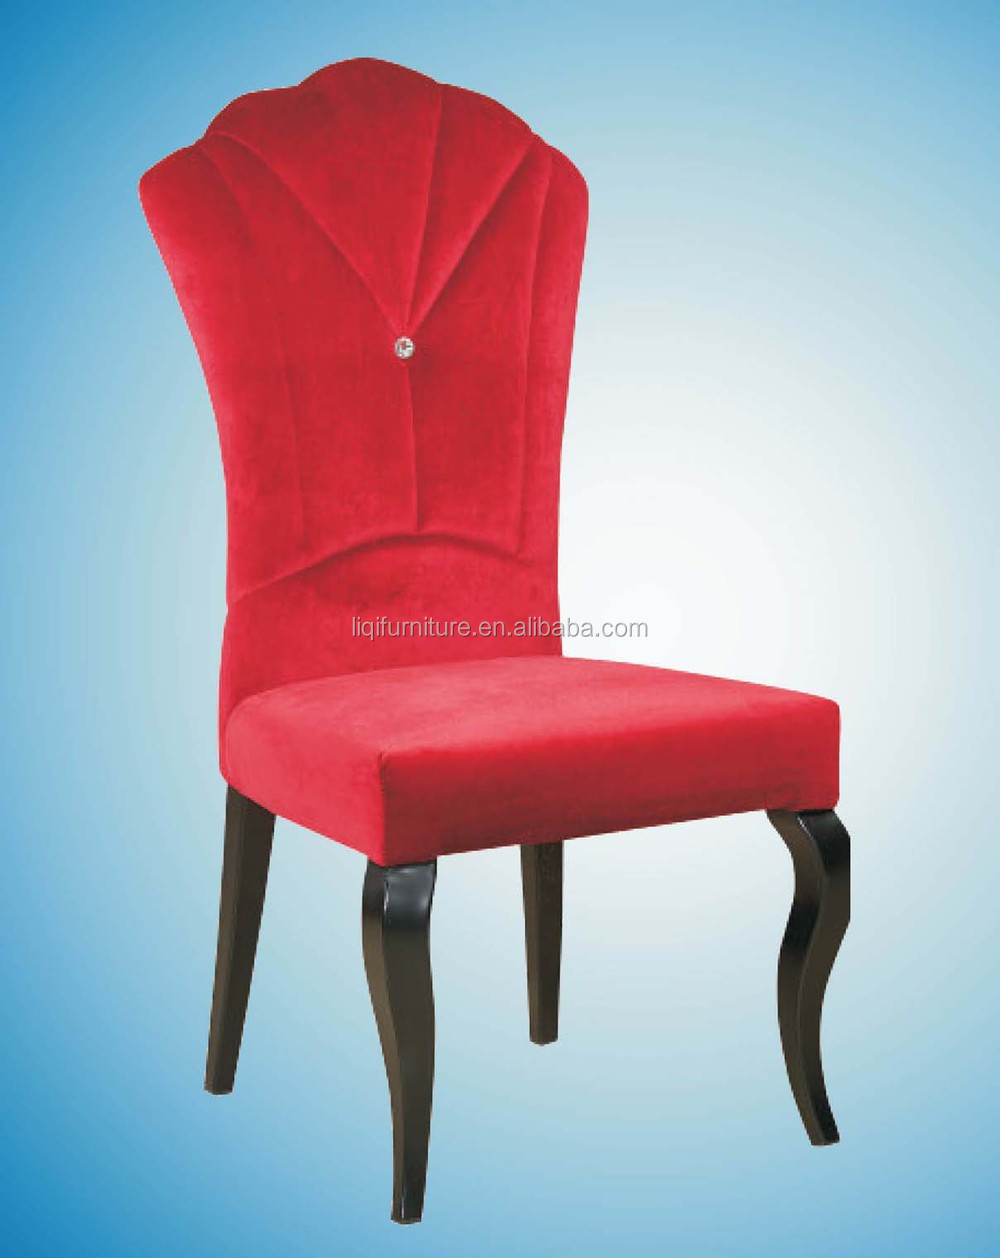 Red Upholstered Dining Chairs Red Velvet Elegant Comfortable Upholstered Luxury High Crown Back Dining Chair Ql E102 Buy Hotel Luxury Dining Chair Velvet Dining Chairs Crown Back